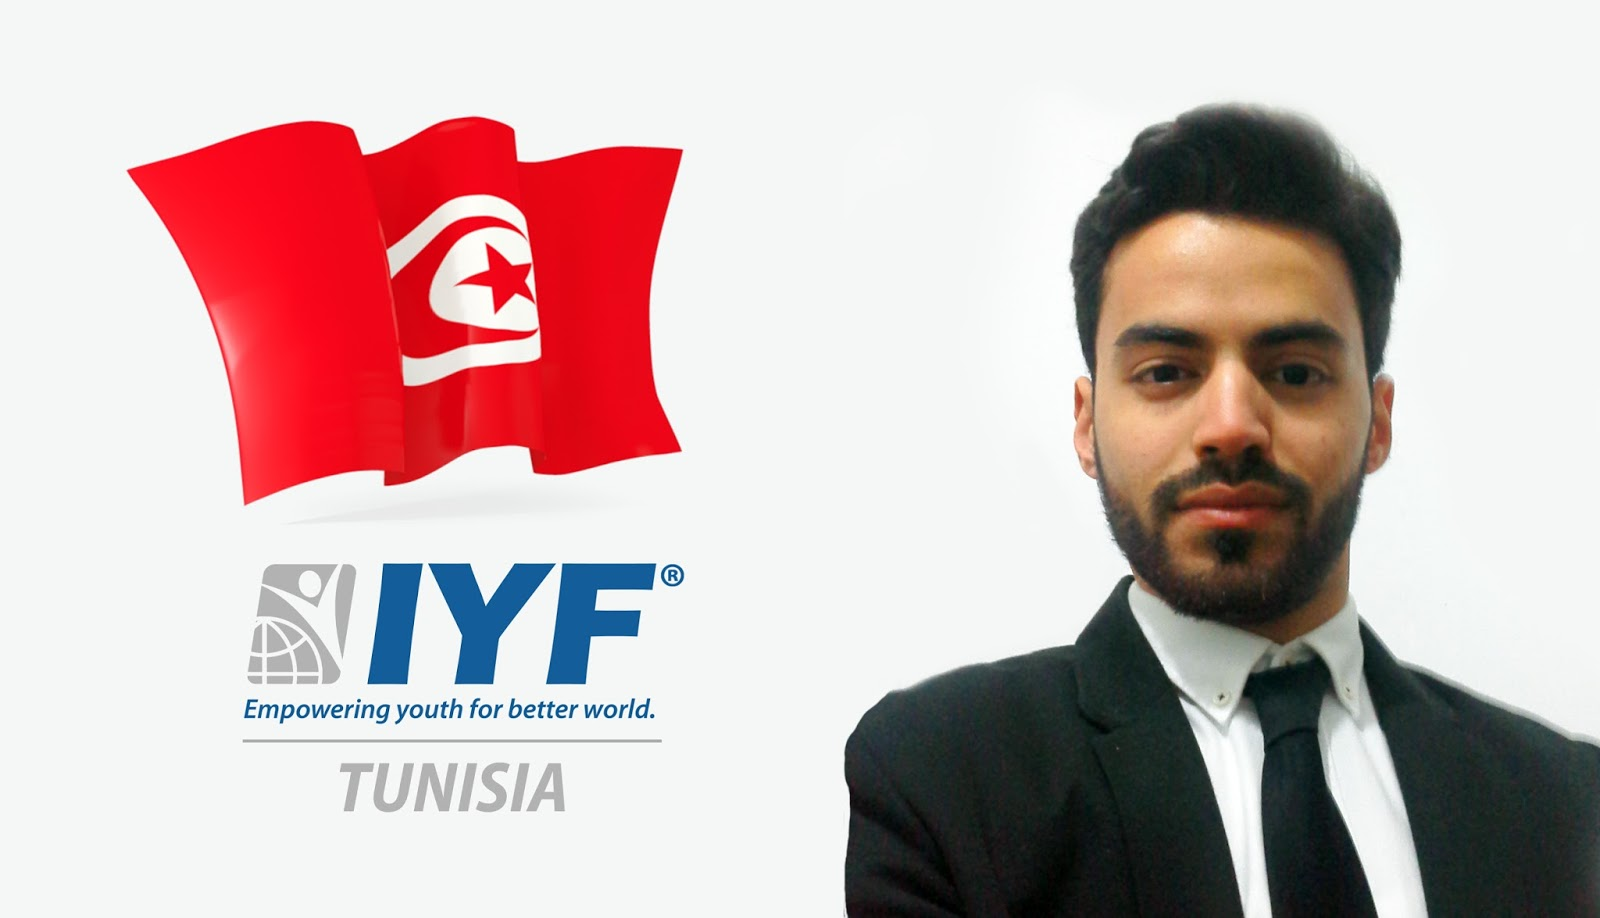 Amine Radhouani, IYF Representative in Tunisia